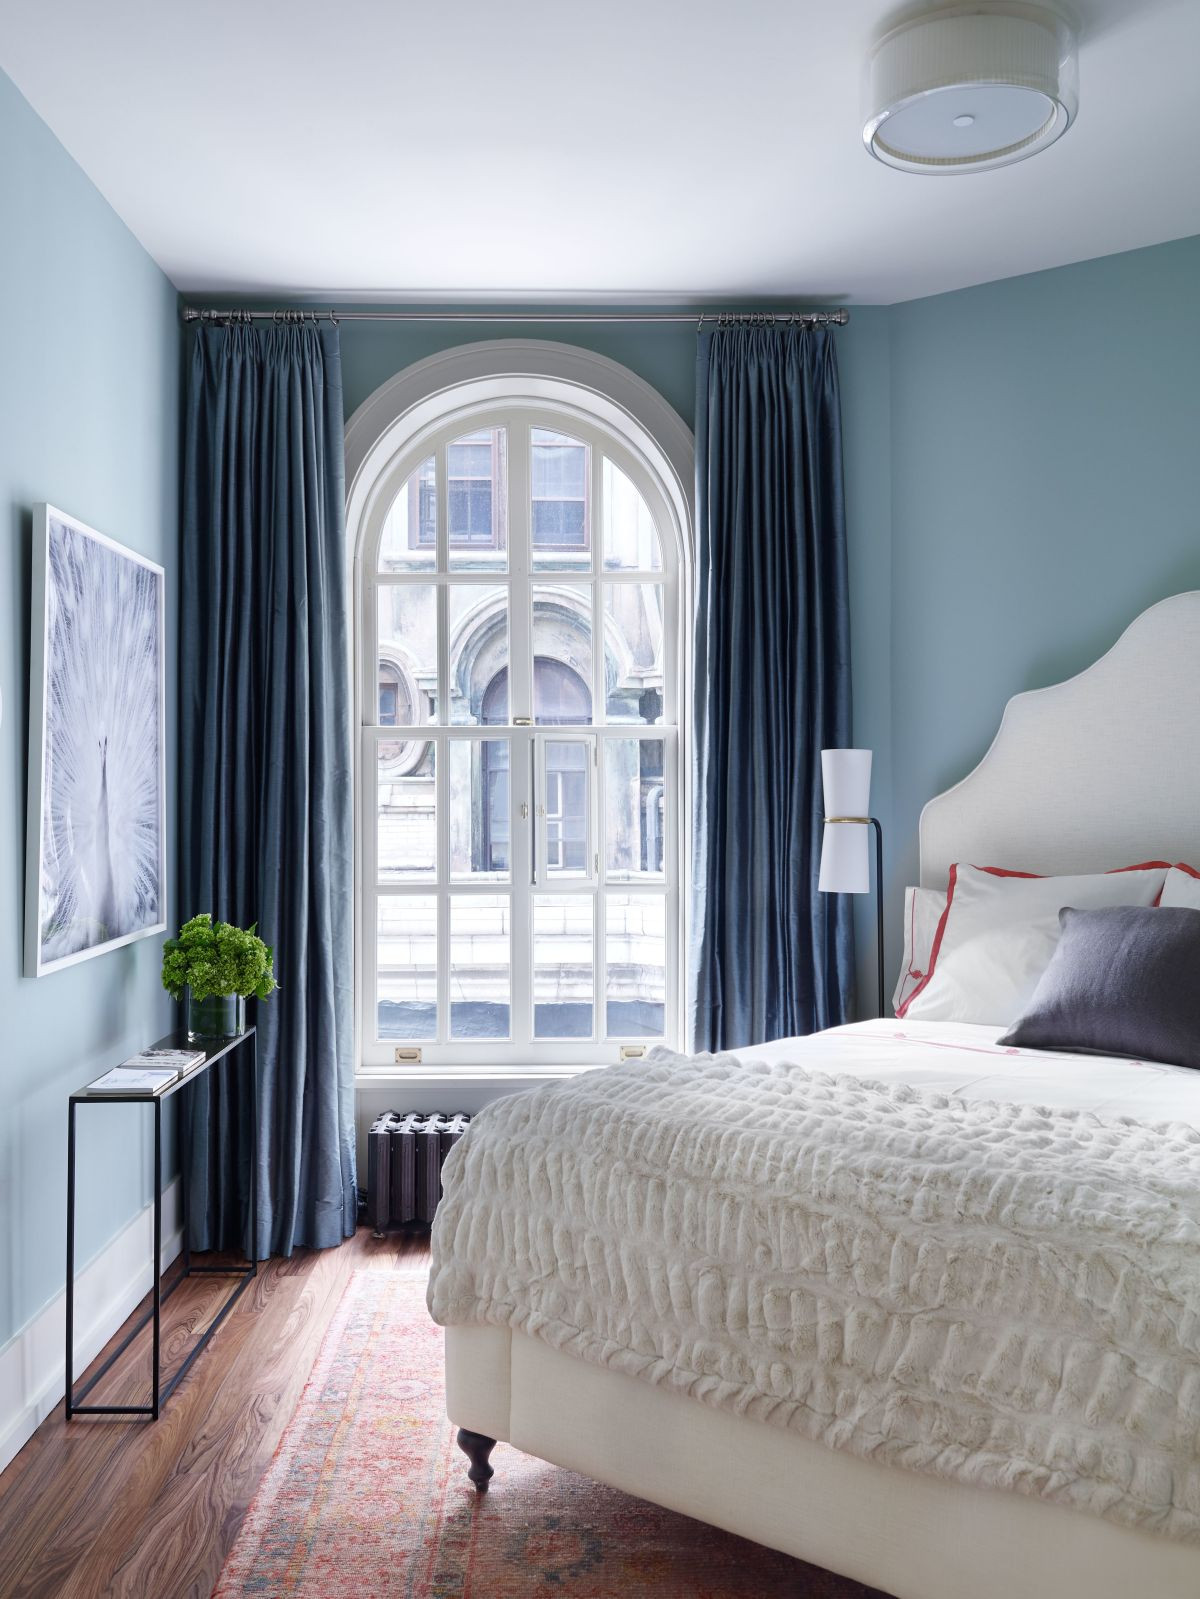 Best ideas about Paint Colors For Bedroom . Save or Pin The Four Best Paint Colors For Bedrooms Now.